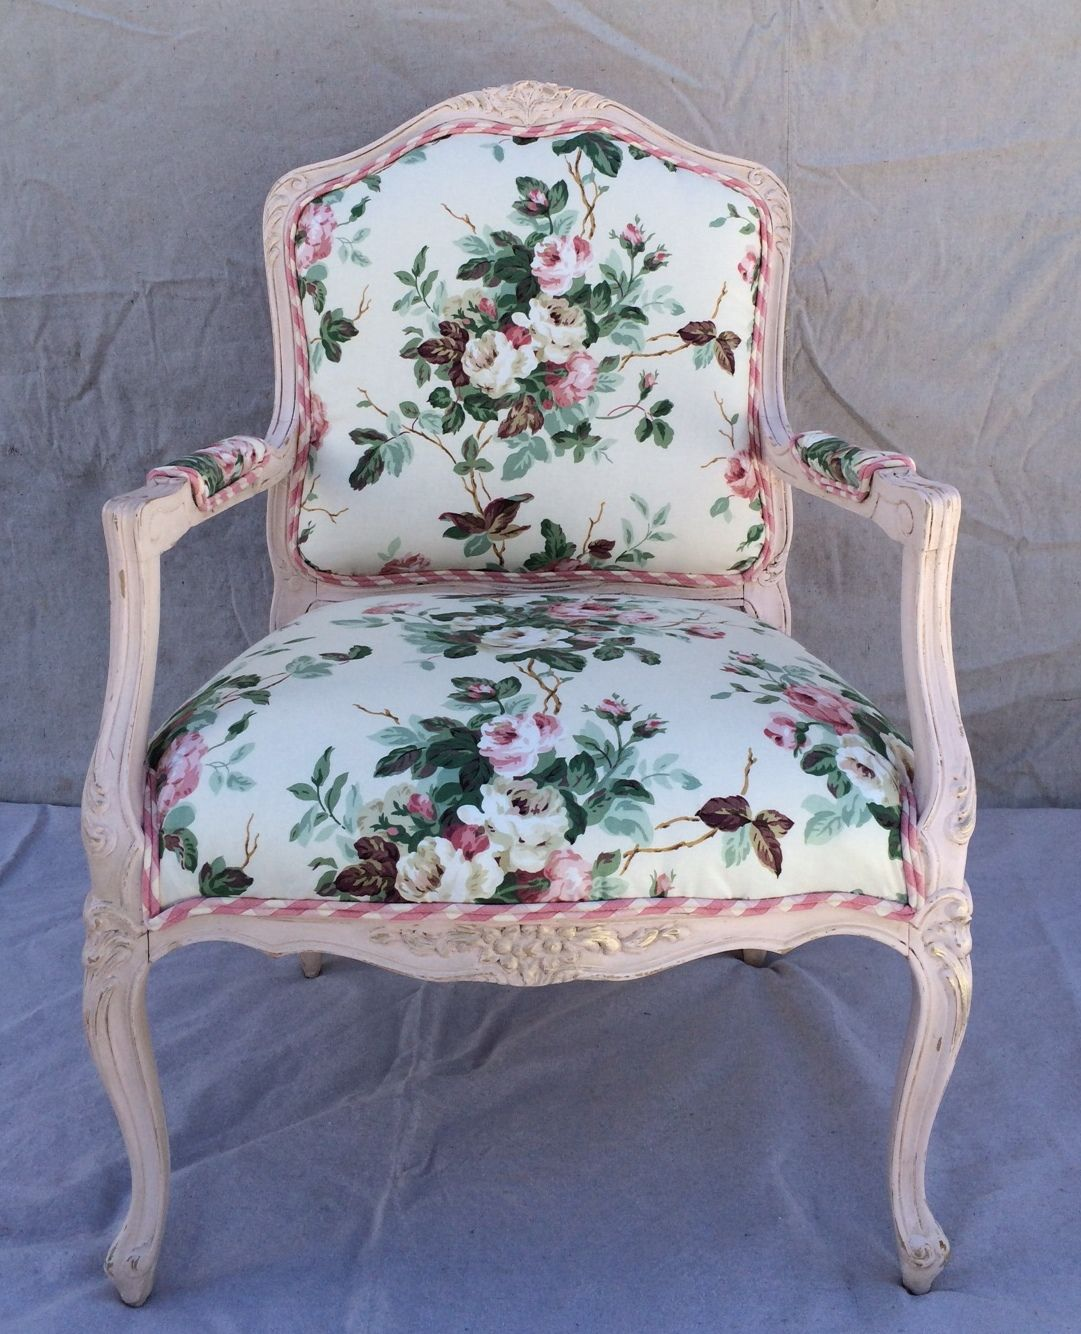 Rose Chintz Vintage Shabby Chic Chair Upholstered